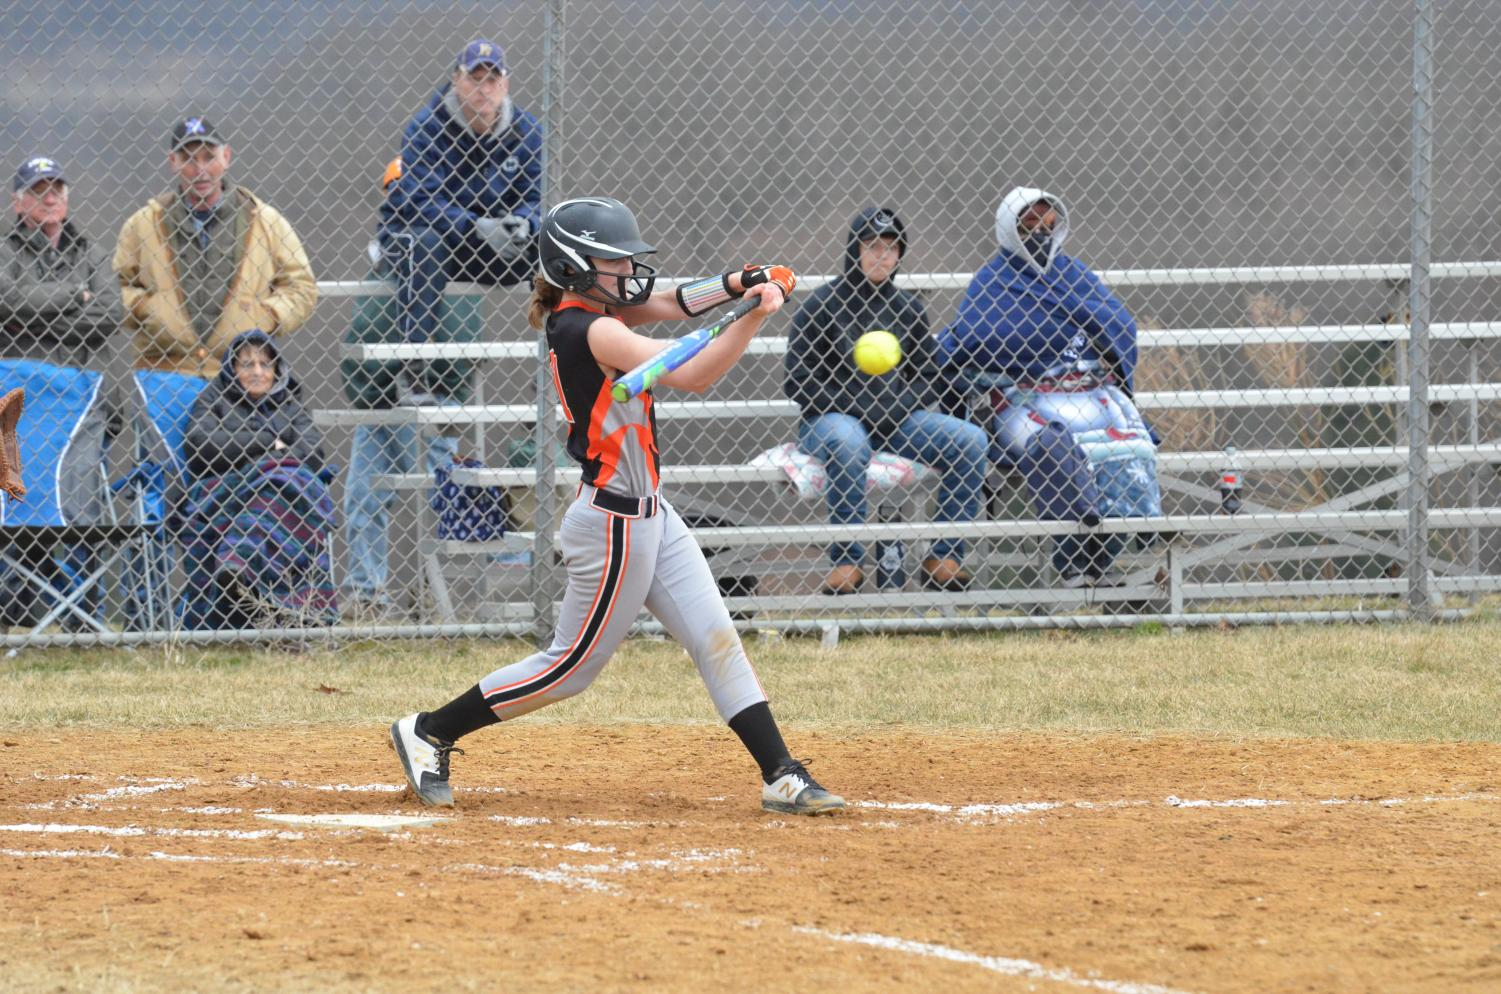 Maci Brodzina at bat for the Lady Eagles